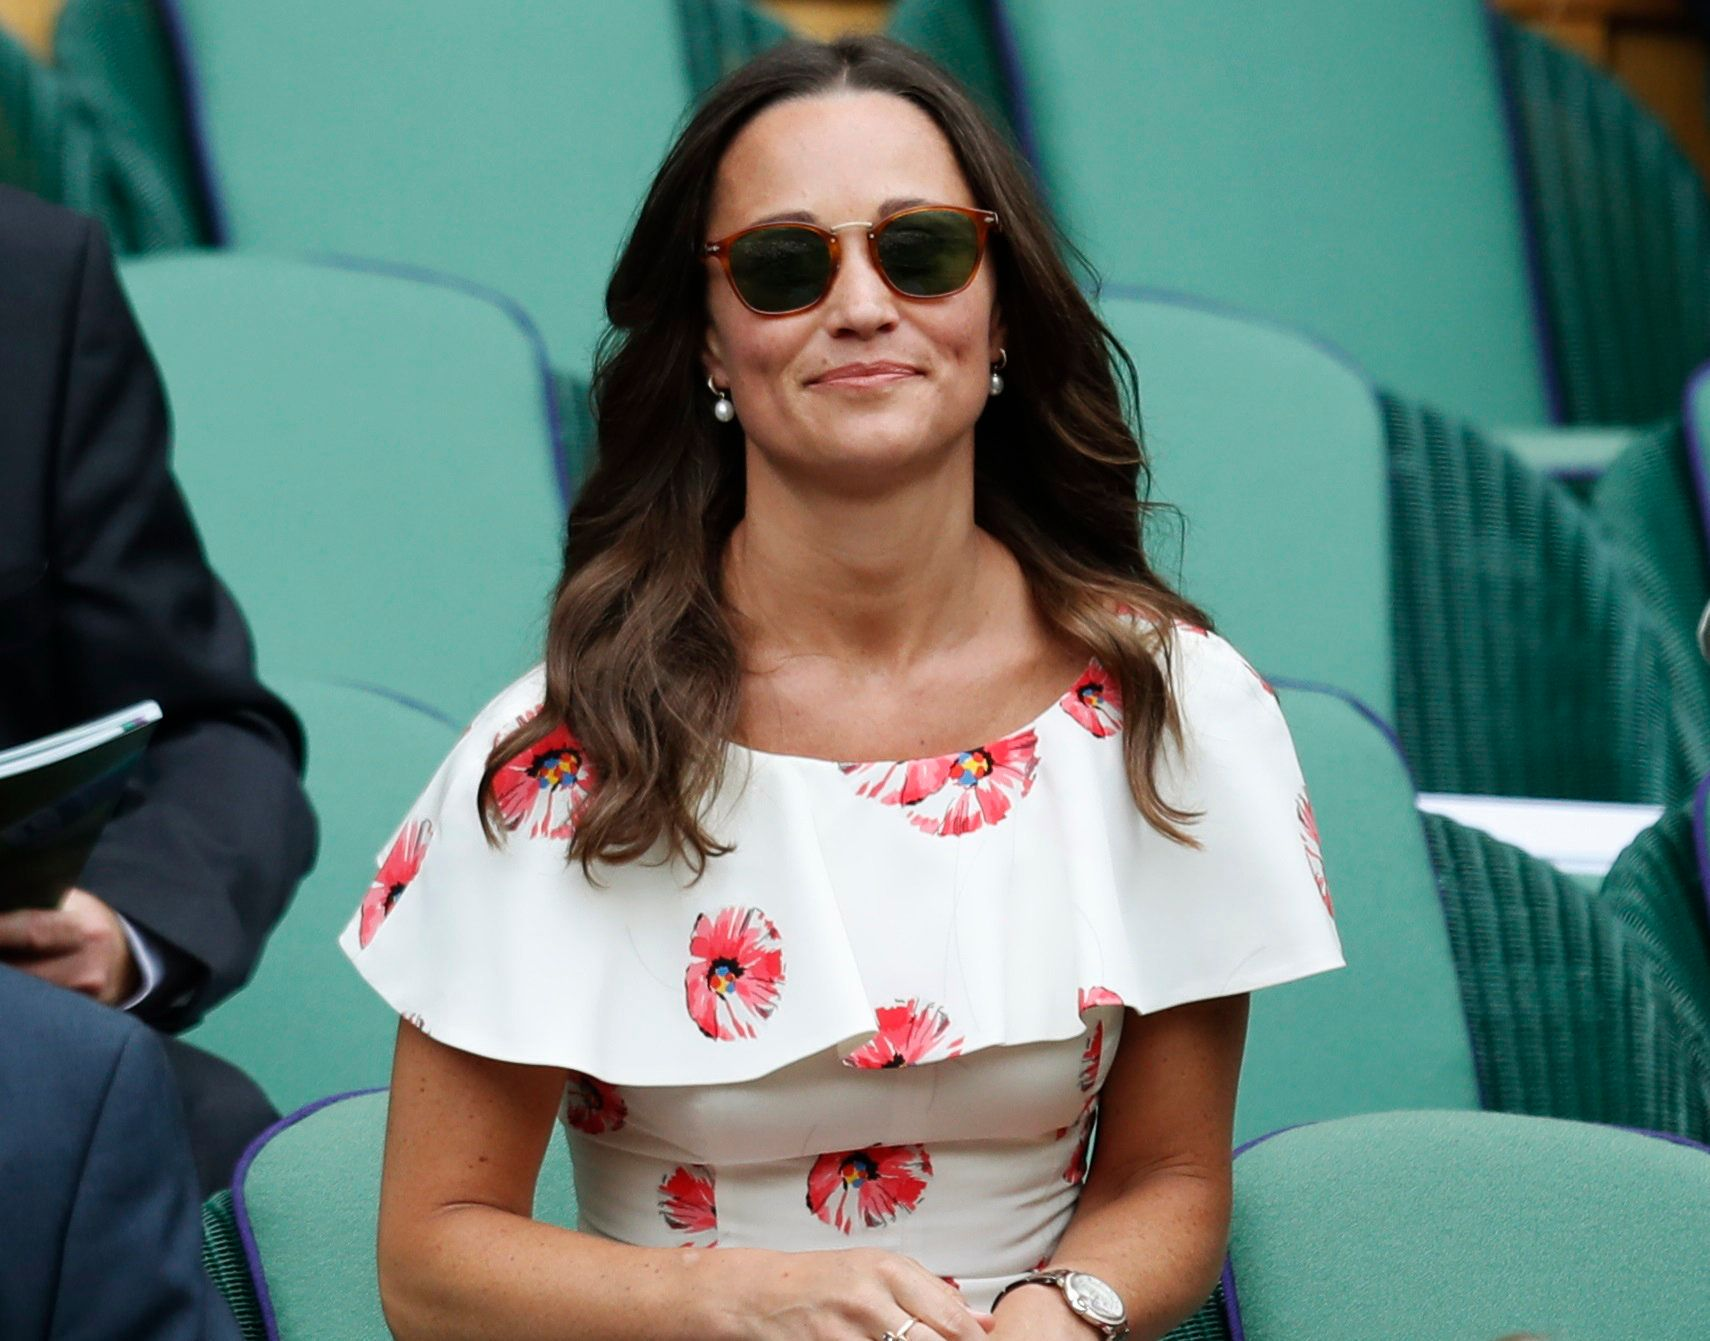 Arrest Made After Reported Hacking Of Pippa Middleton's